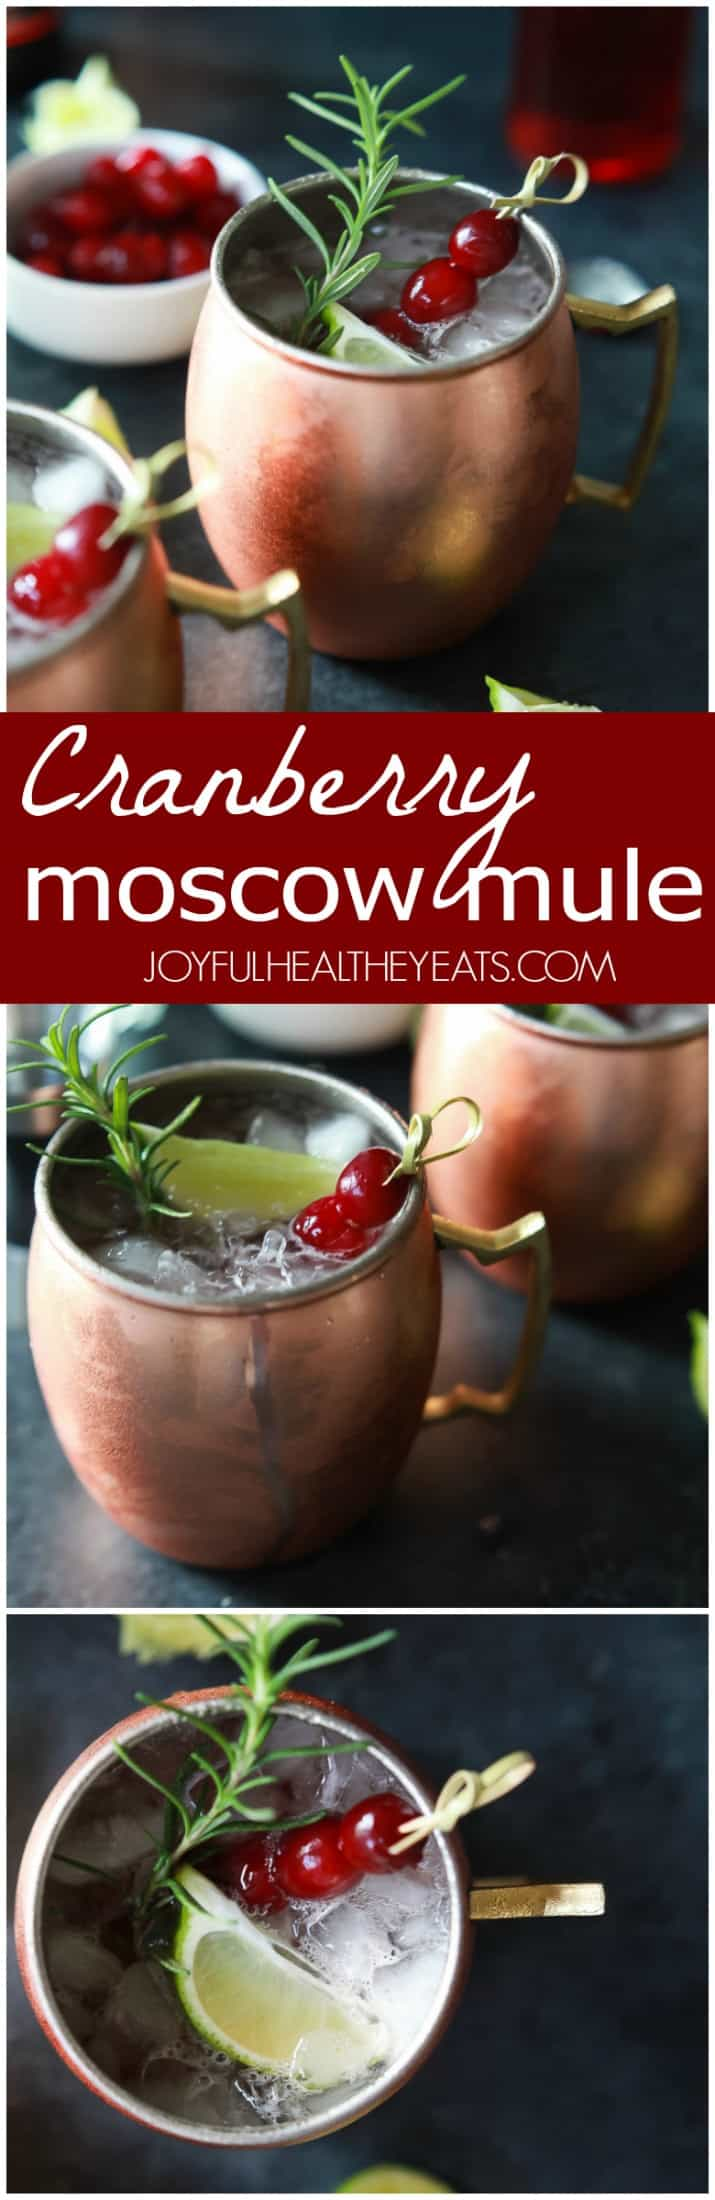 Collage for Cranberry Moscow Mule recipe